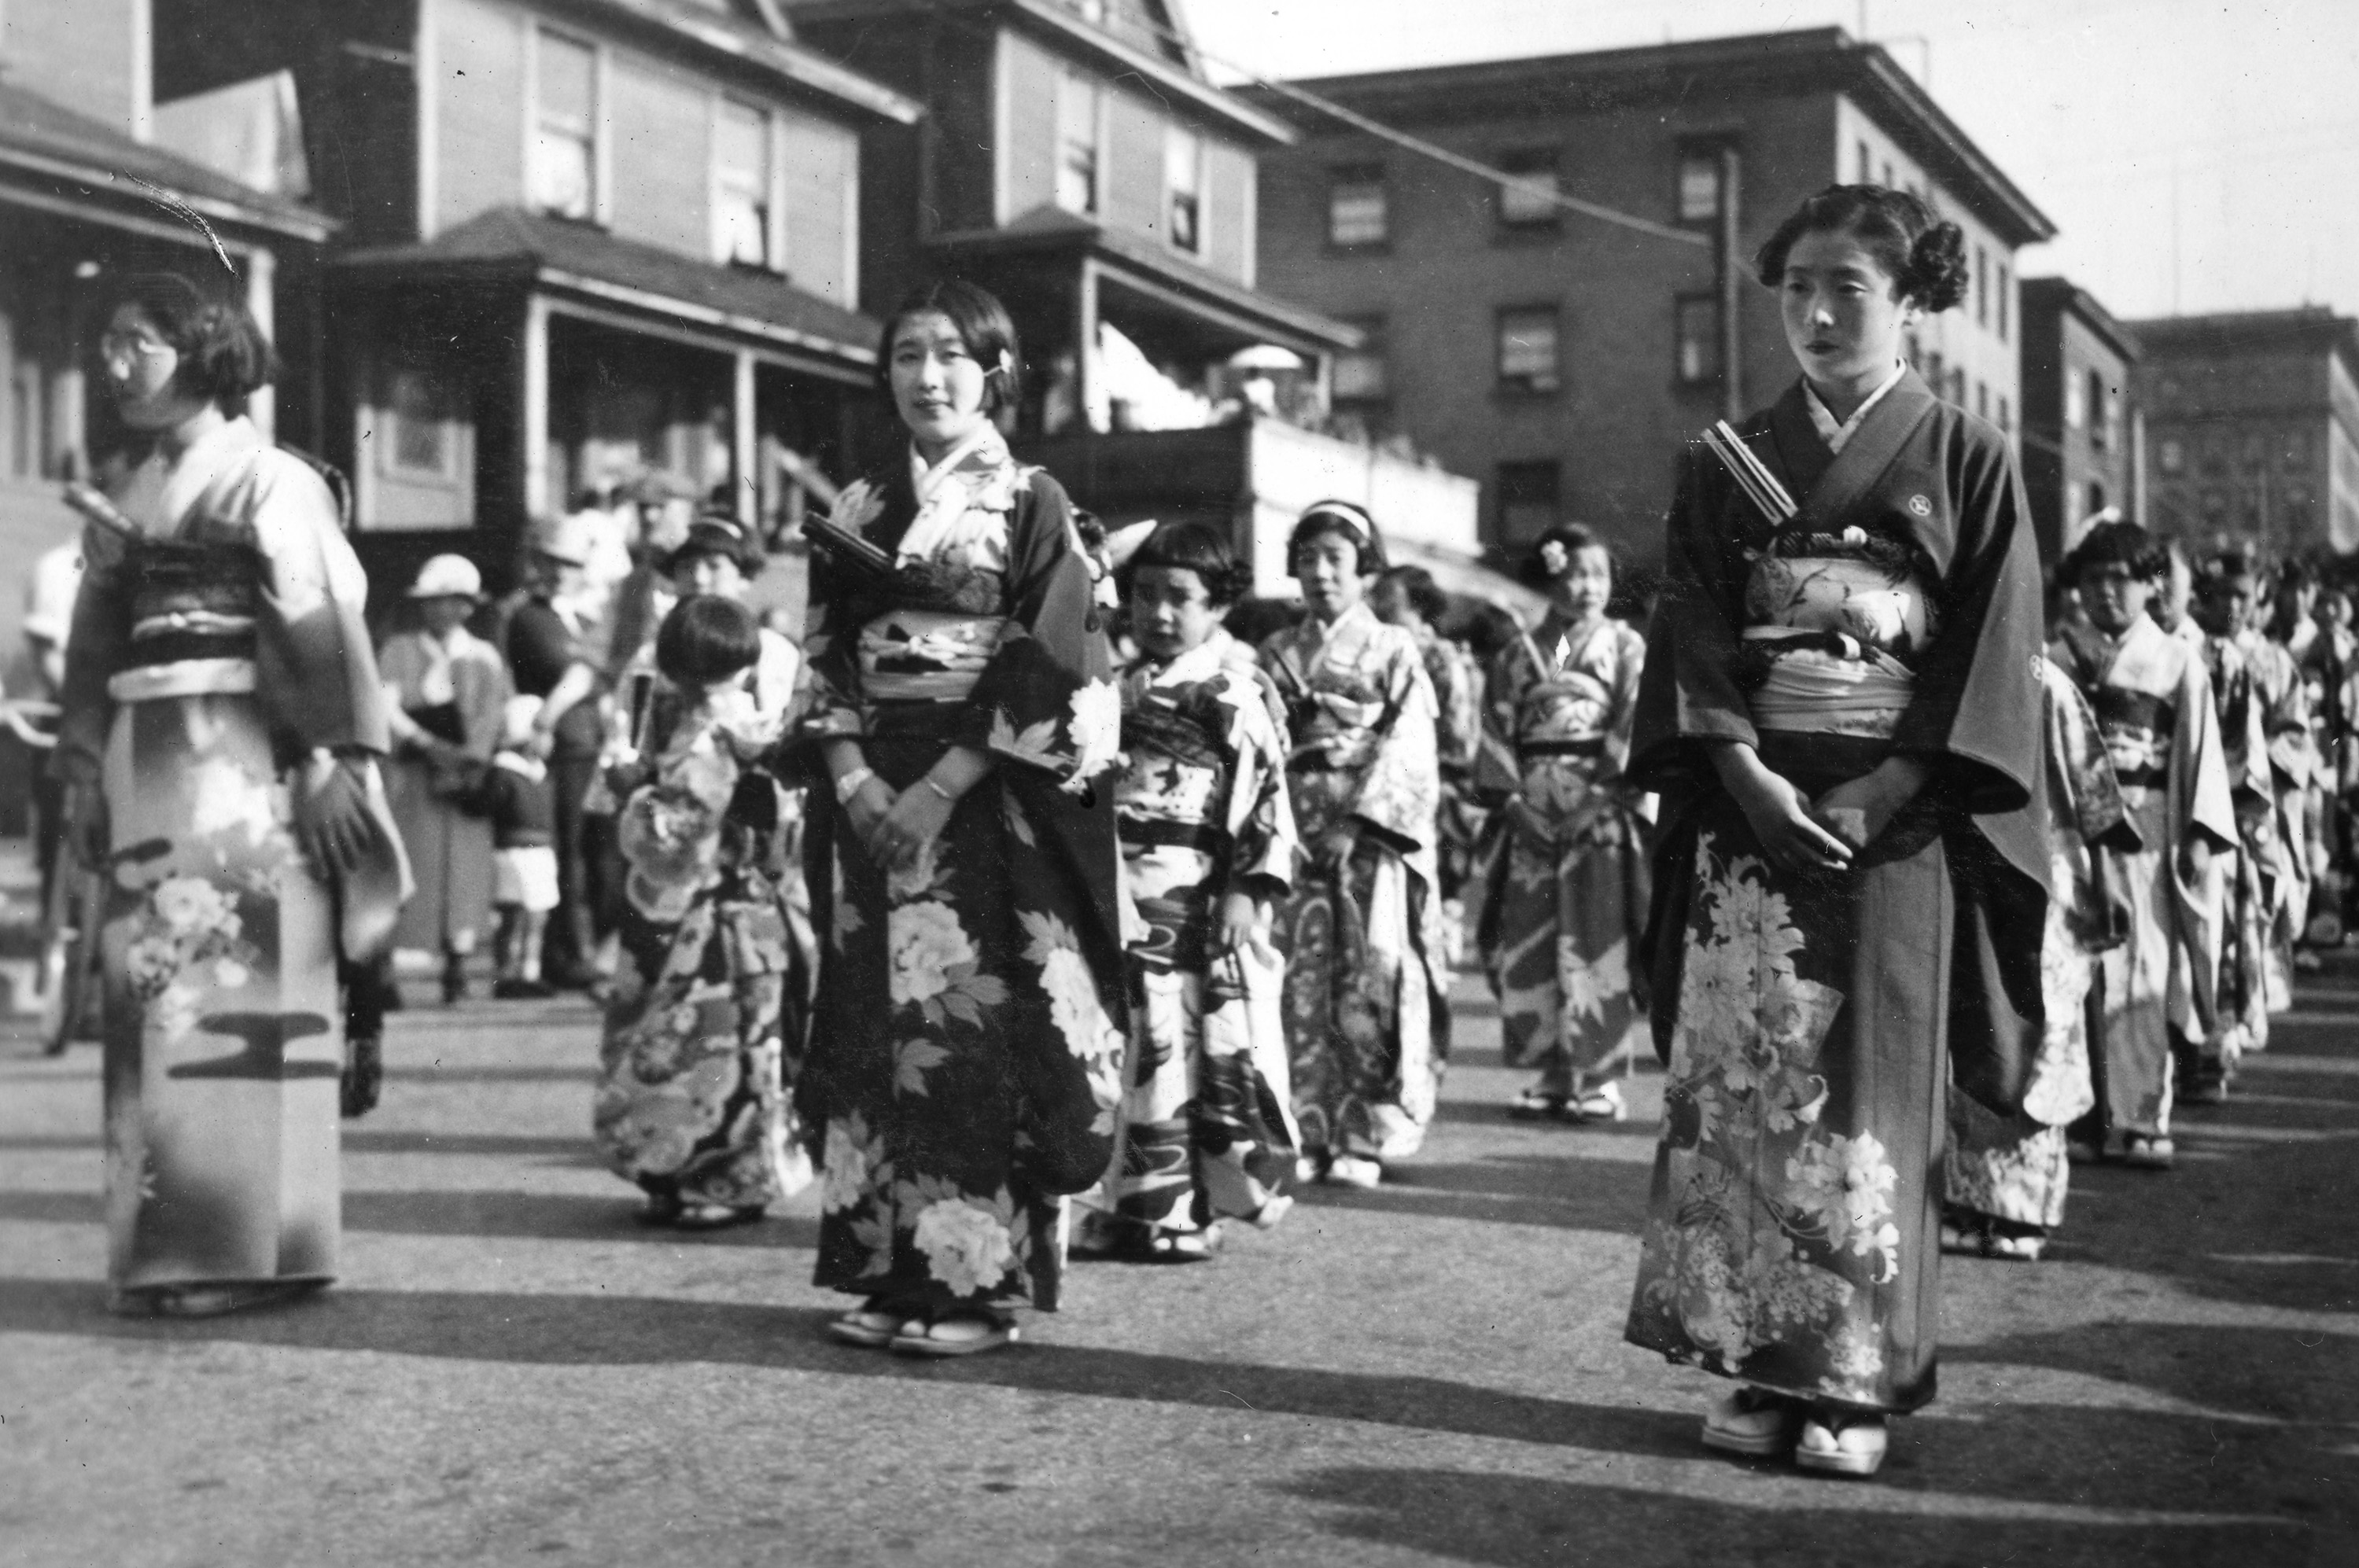 In this photo, three single-file lines of women in kimono march in the parade.